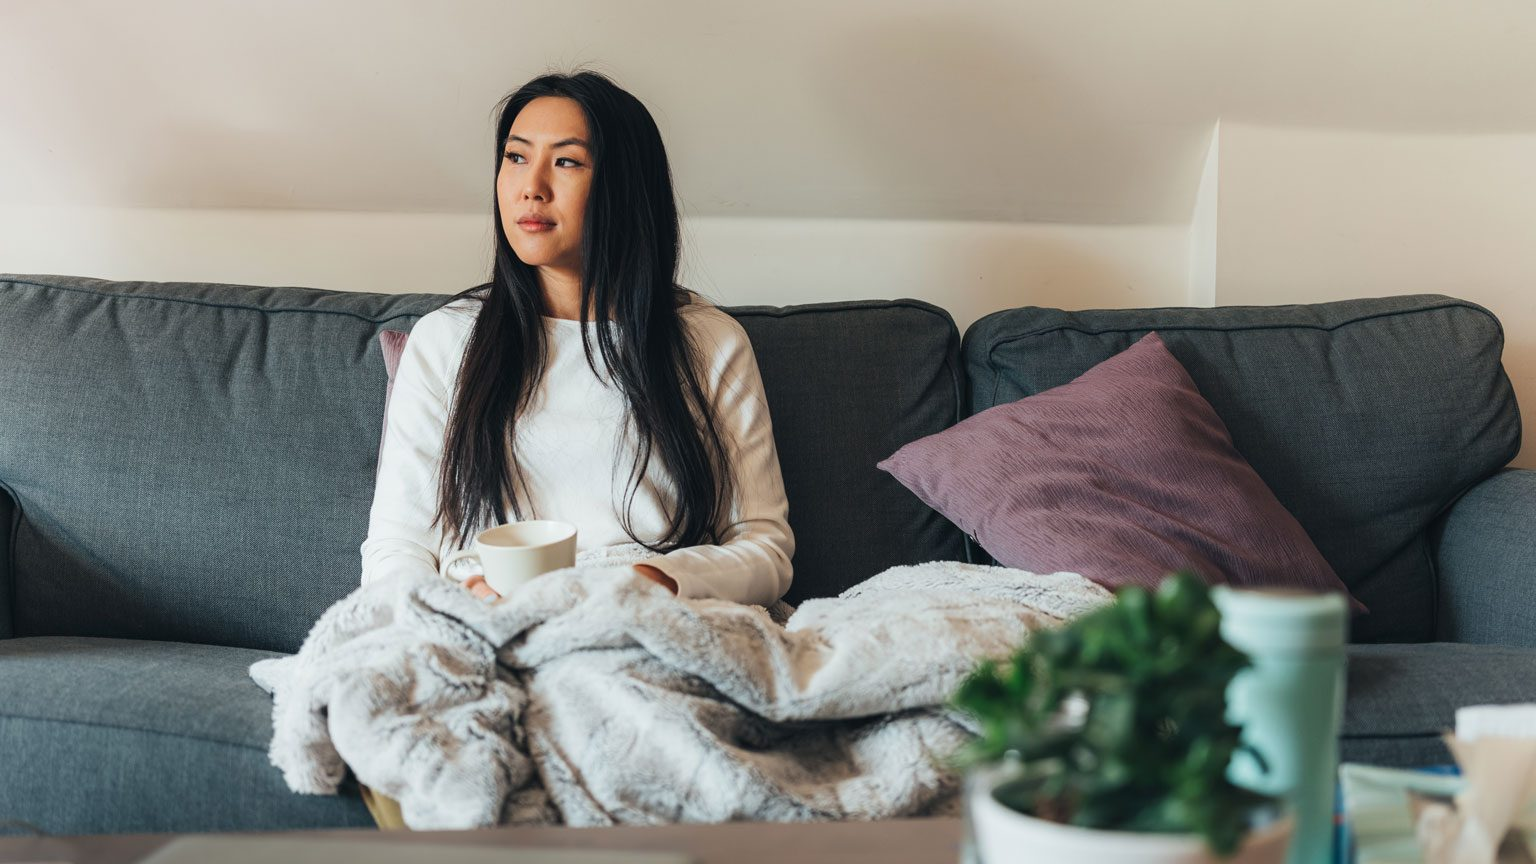 Asian woman feeling sick with flu, fever and headache while at home.